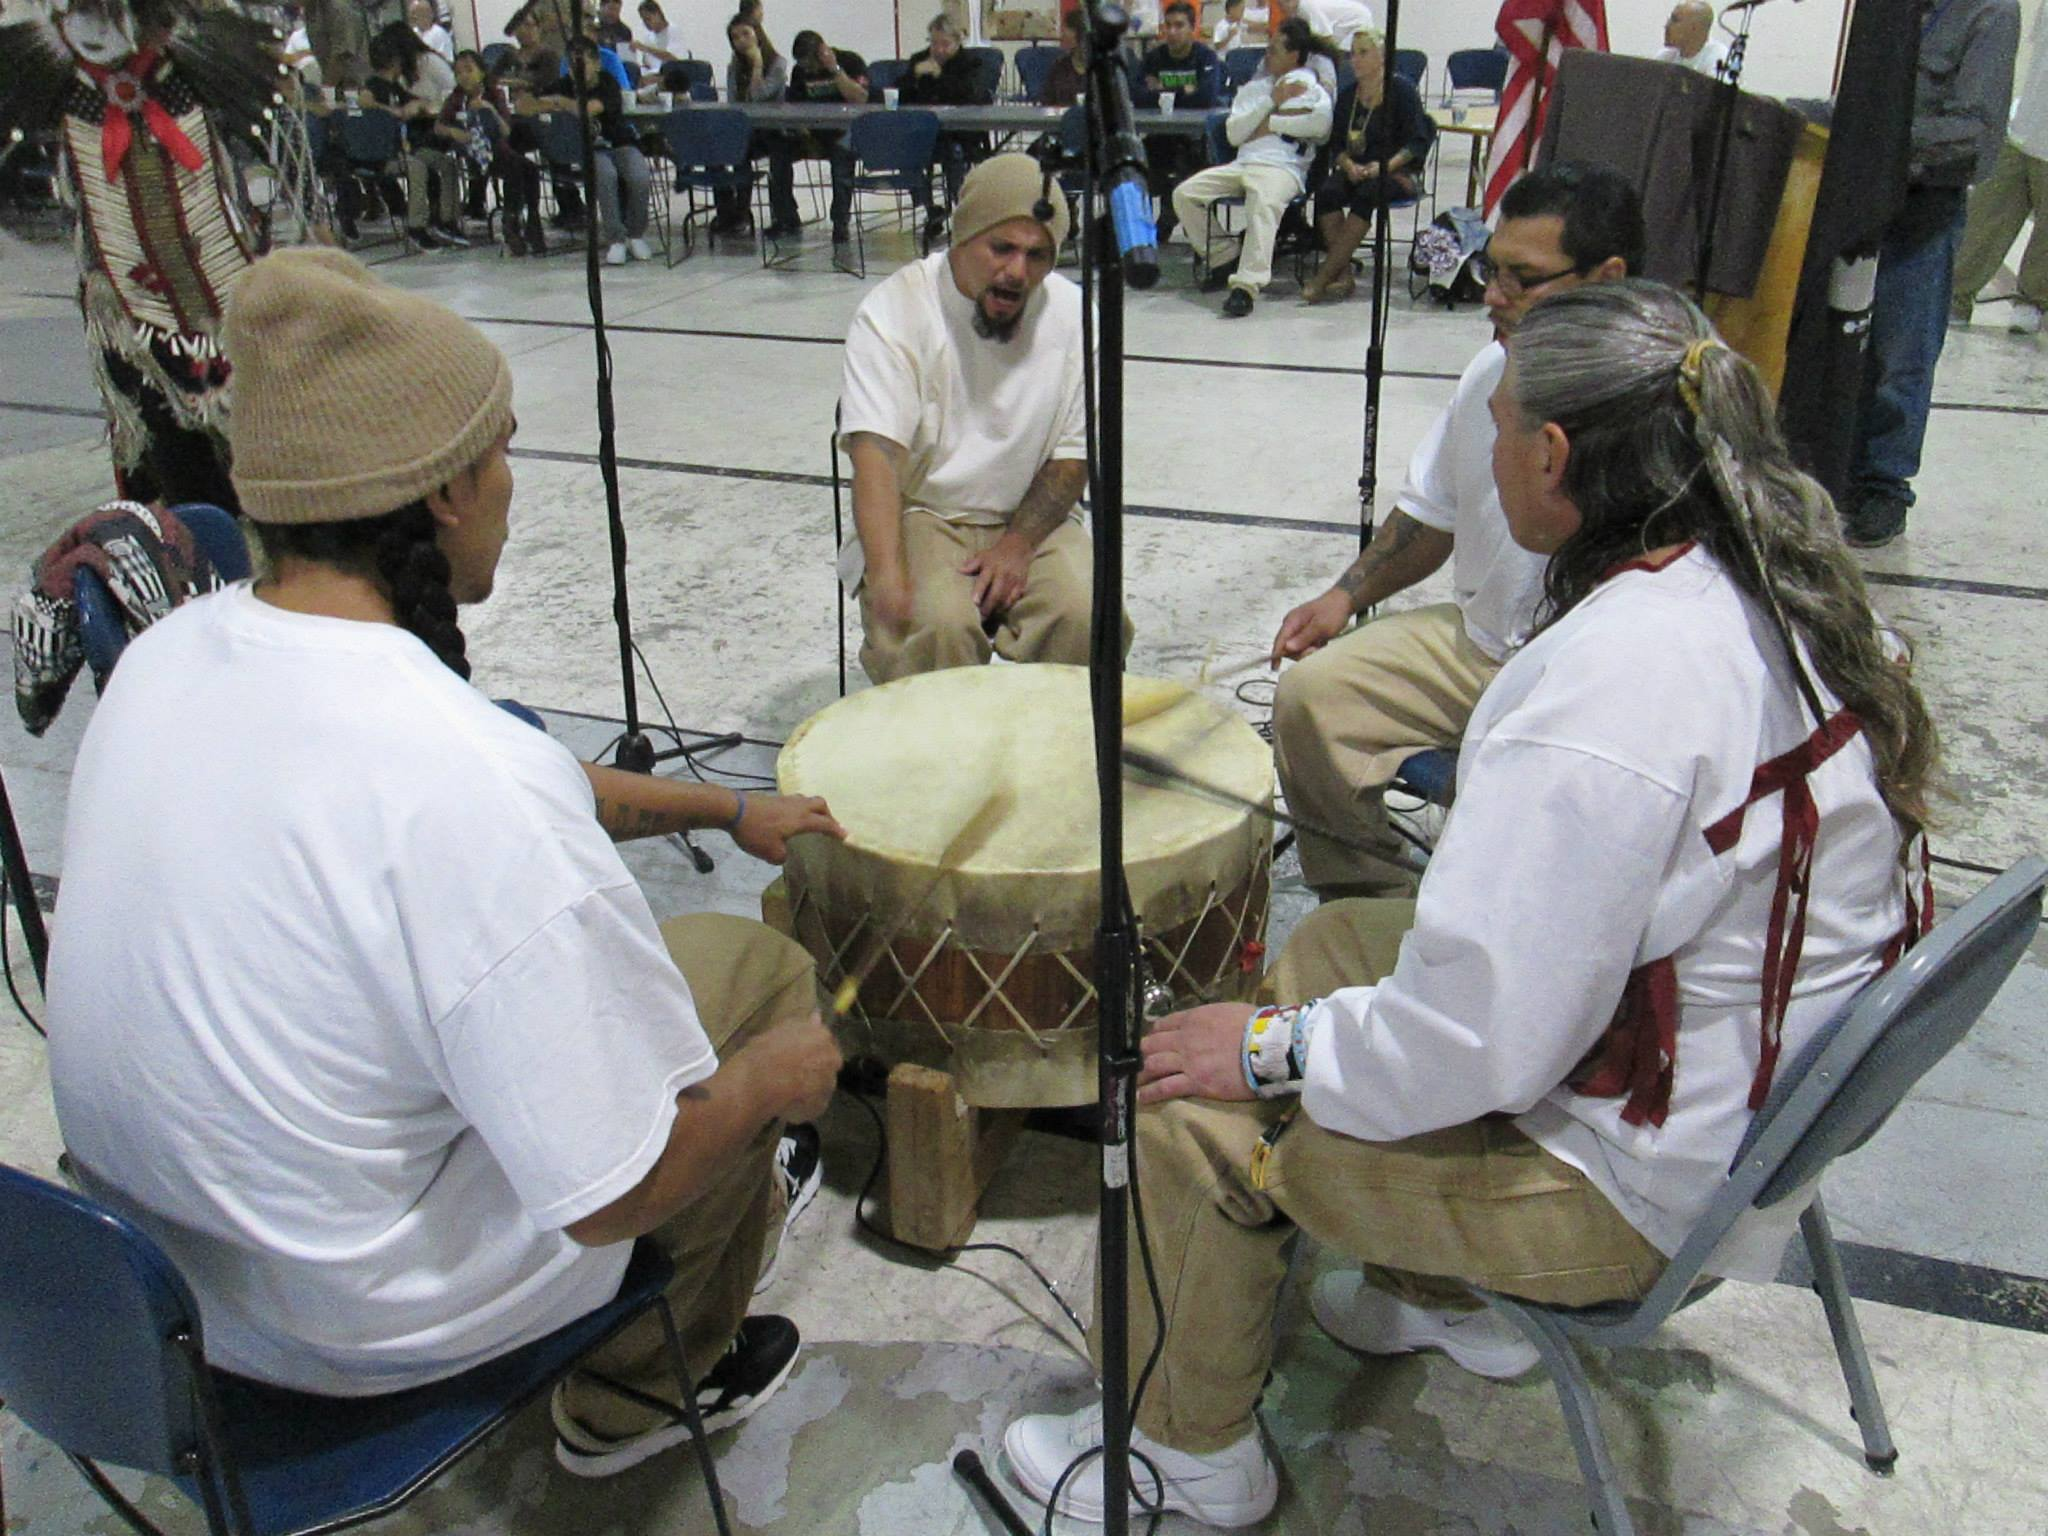 Indian inmates in Alabama lose decision over long hair policy